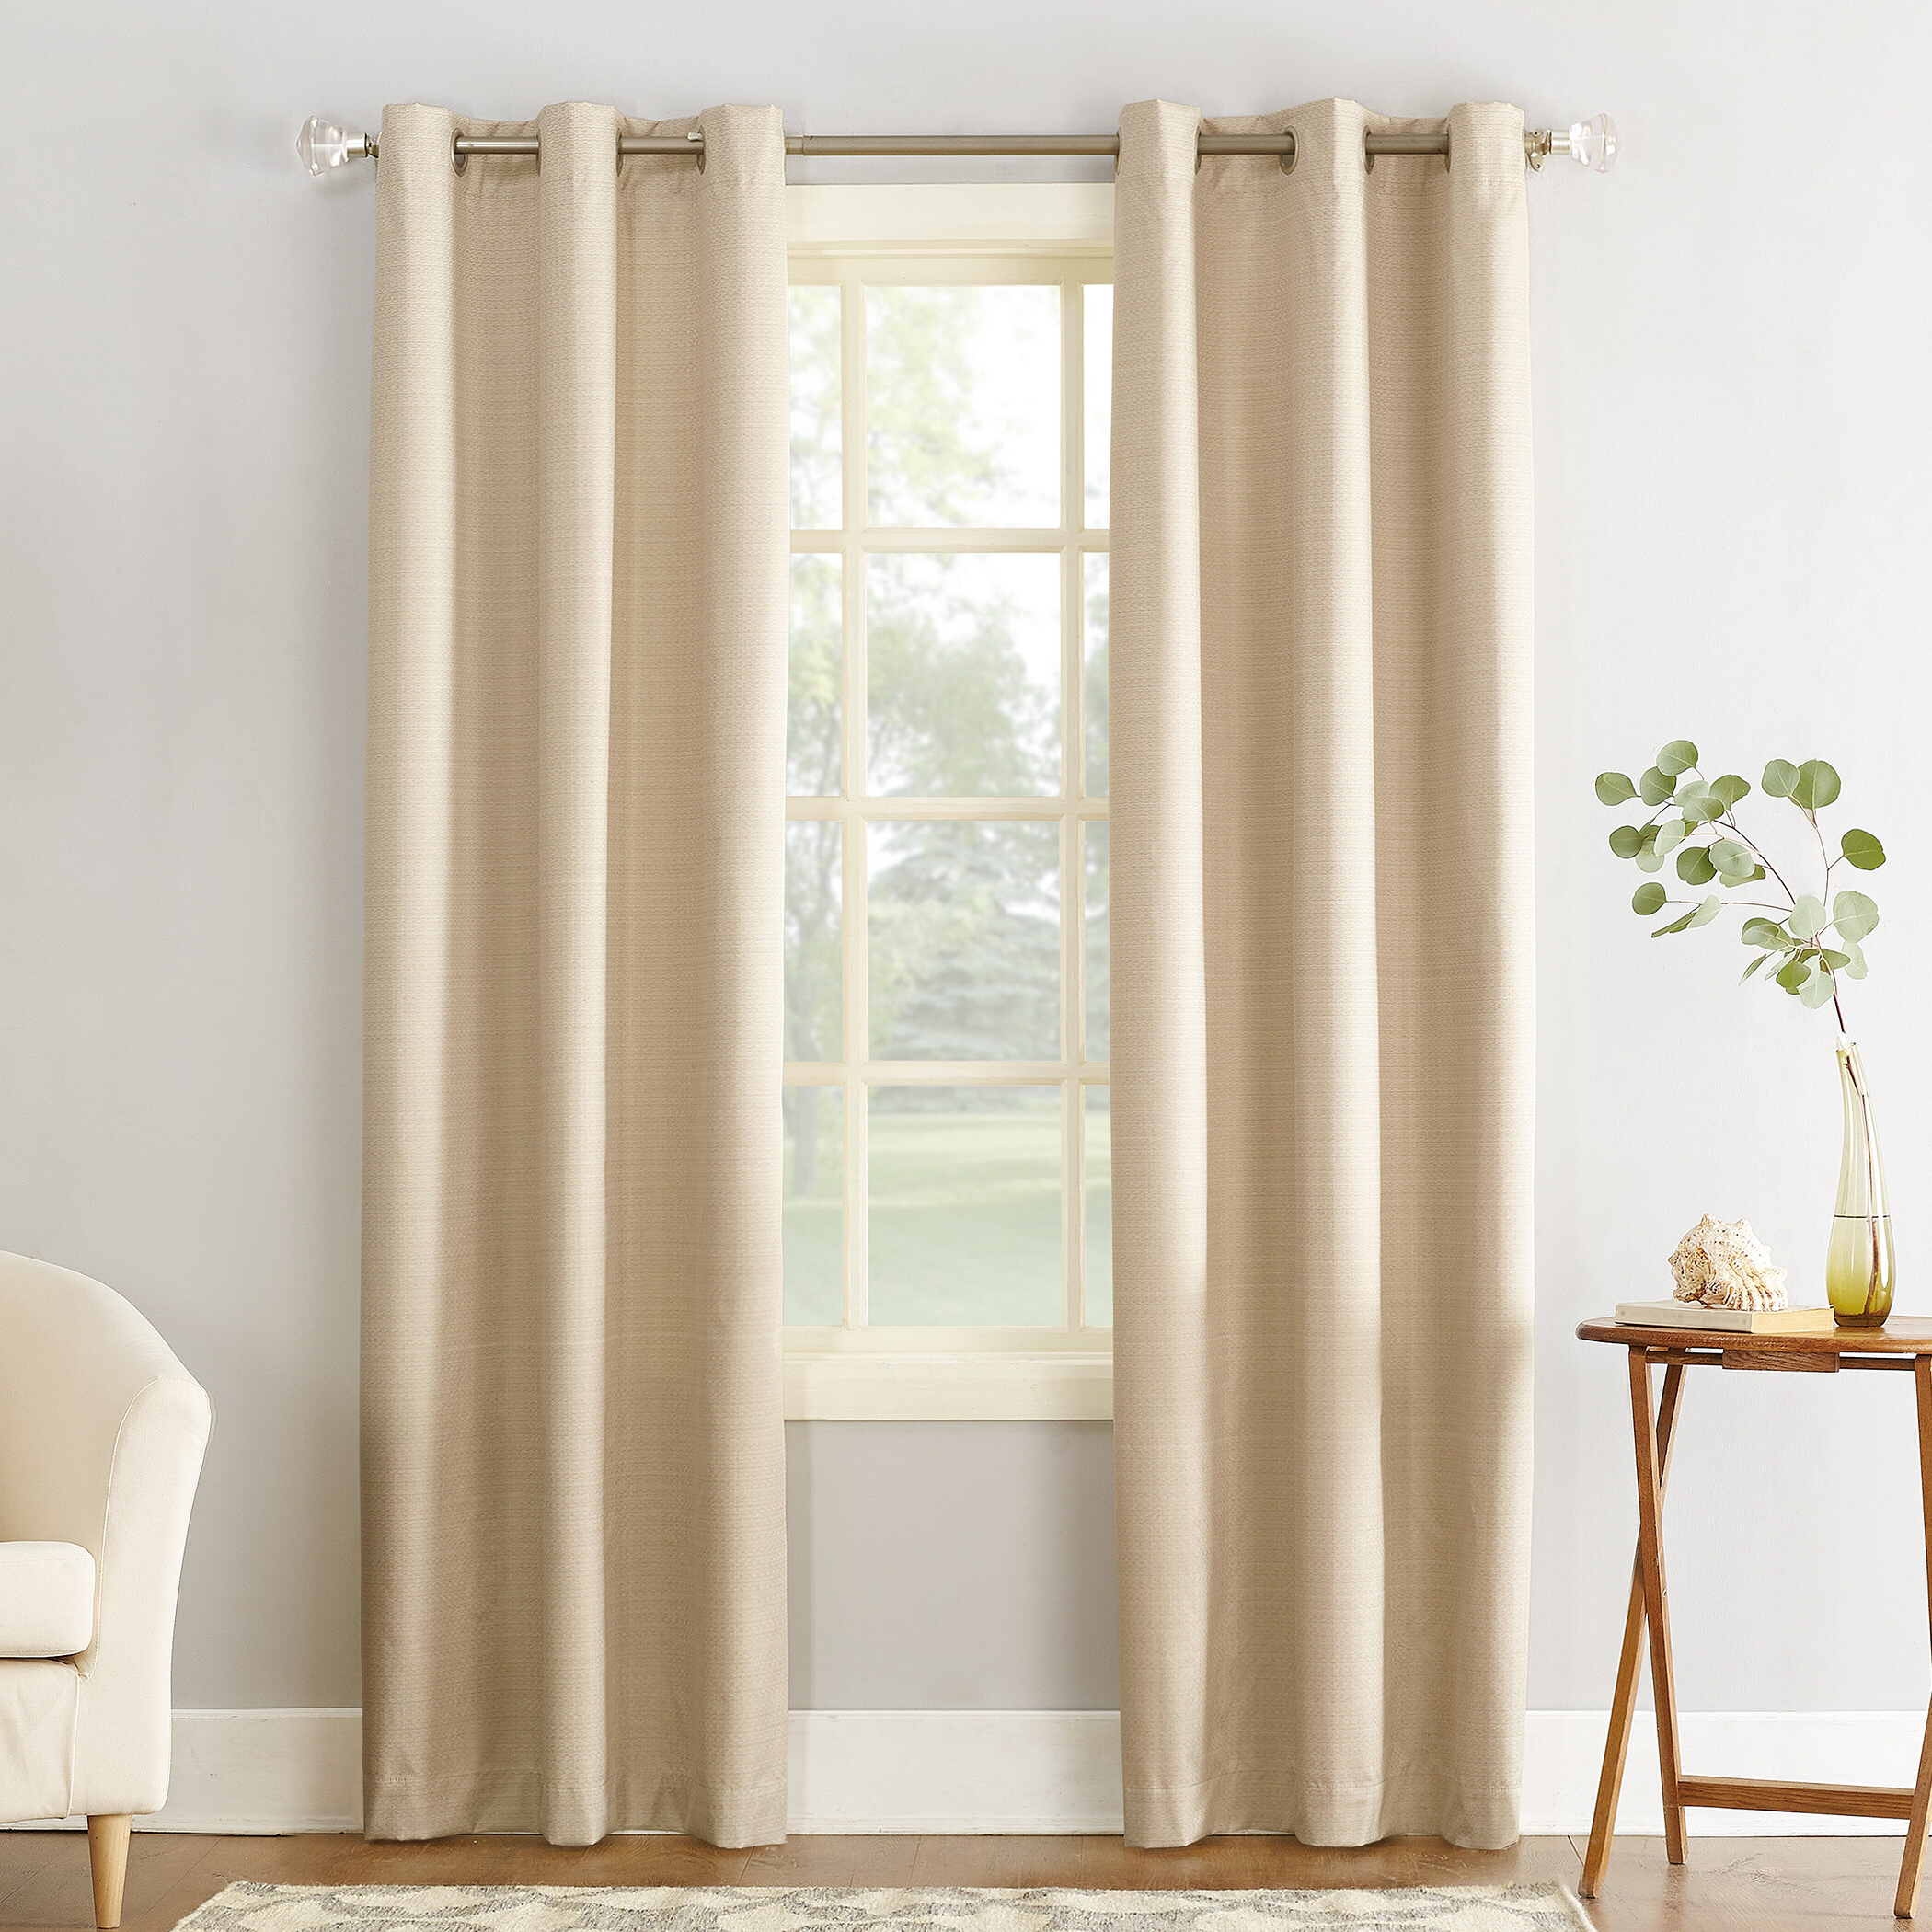 Latest Cooper Textured Thermal Insulated Grommet Curtain Panels Pertaining To Cooper Textured Solid Room Darkening Thermal Insulated Grommet Single  Curtain Panel (View 14 of 20)